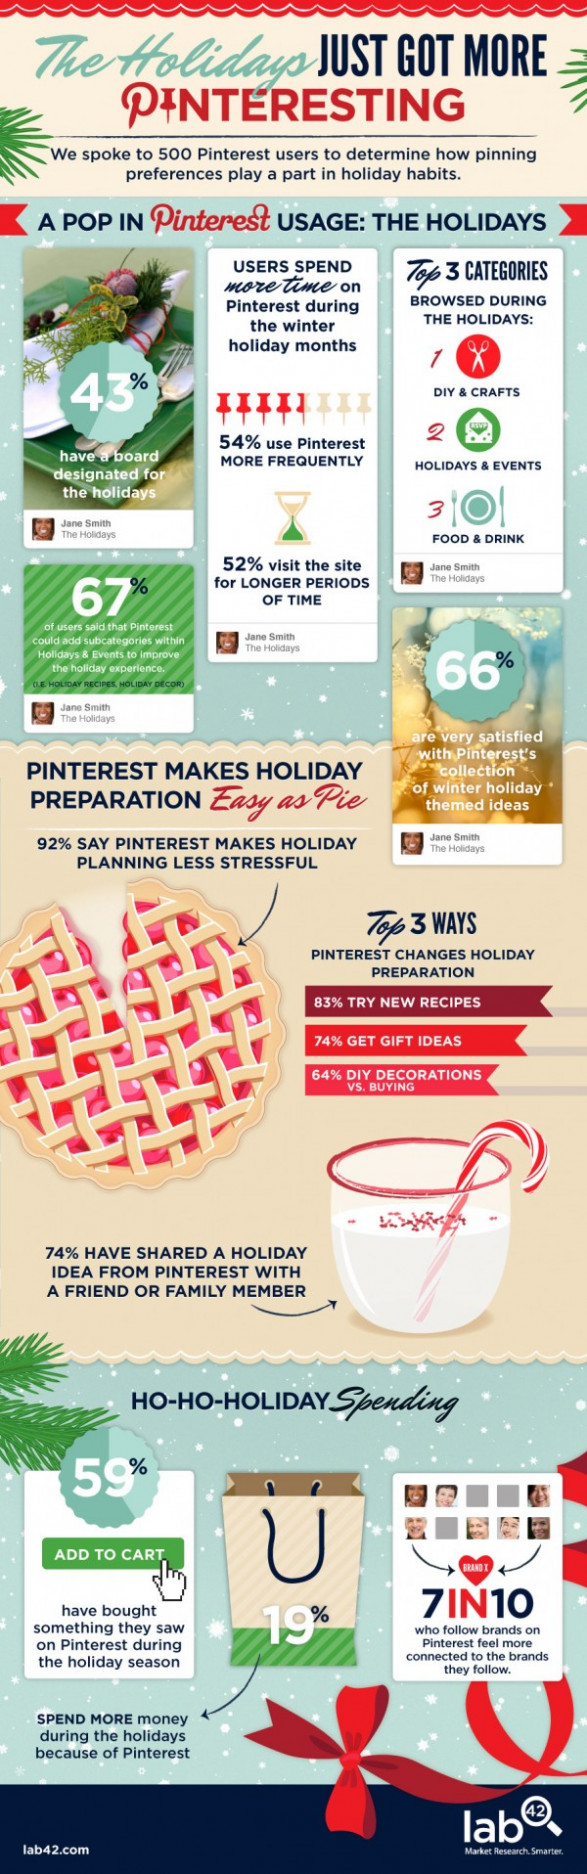 Pinterest Makes Holiday Planning Less Stressful